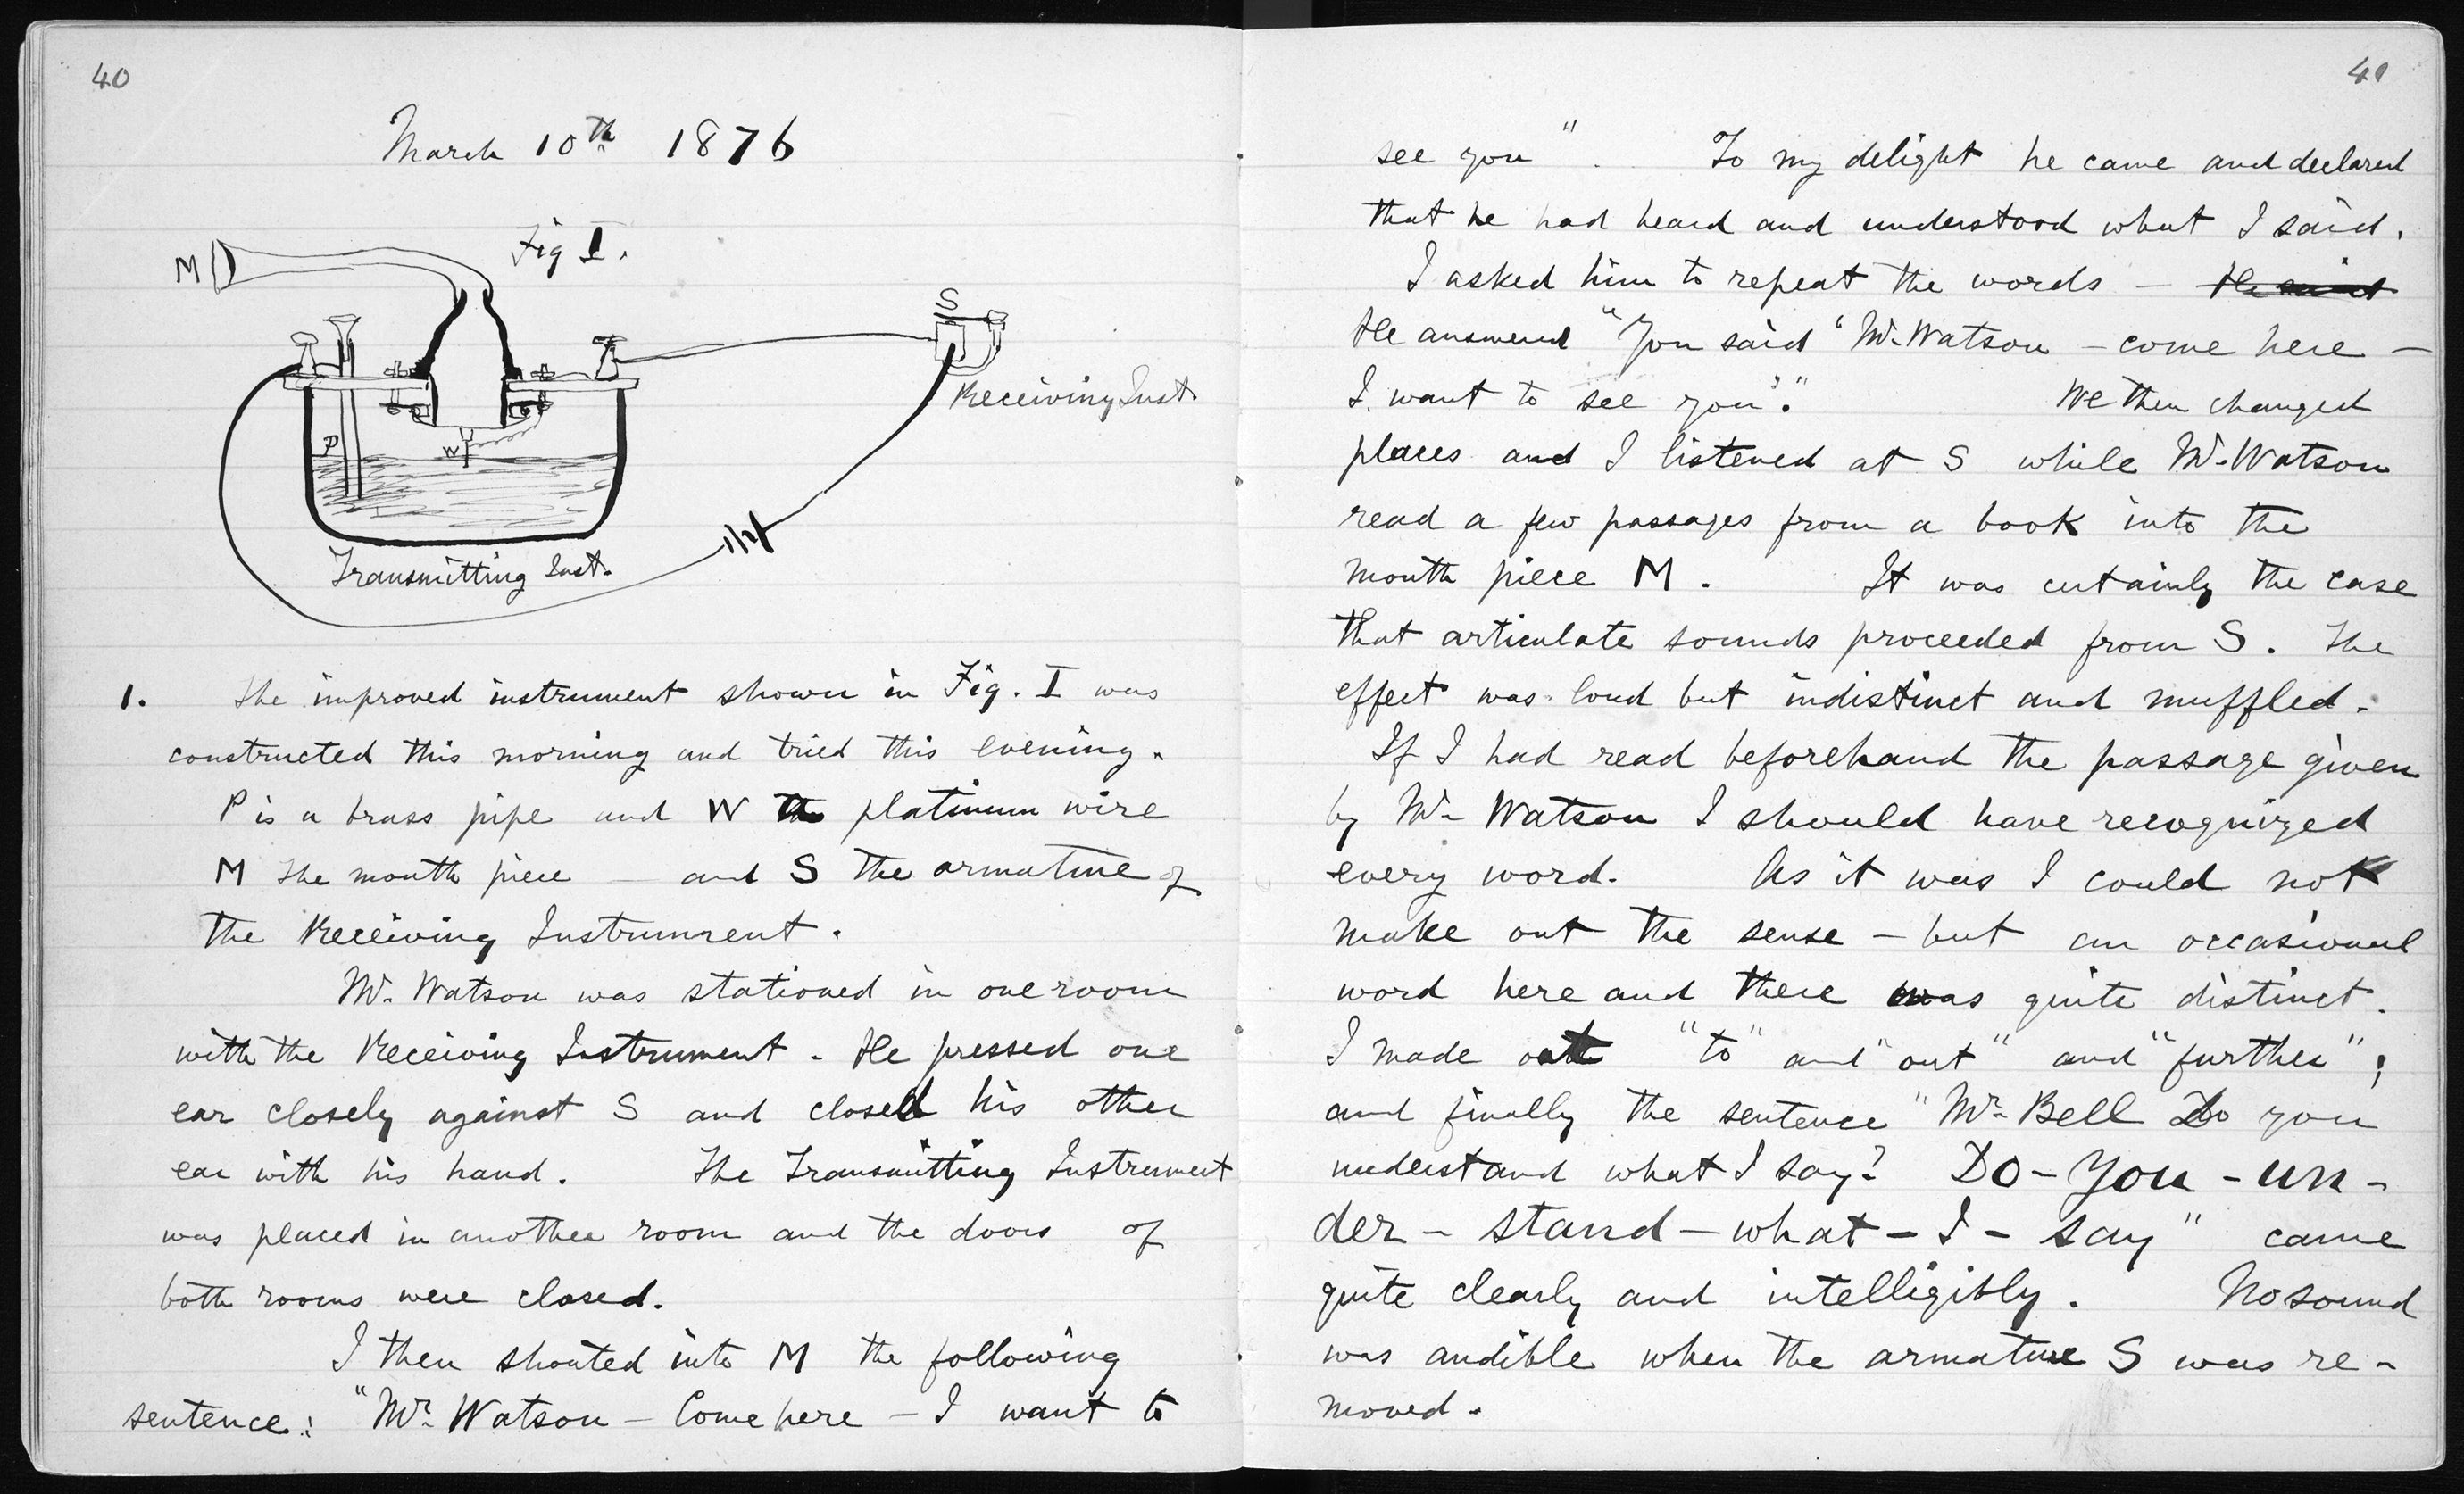 Alexander Graham Bell Lab Notebook - March 10, 1876